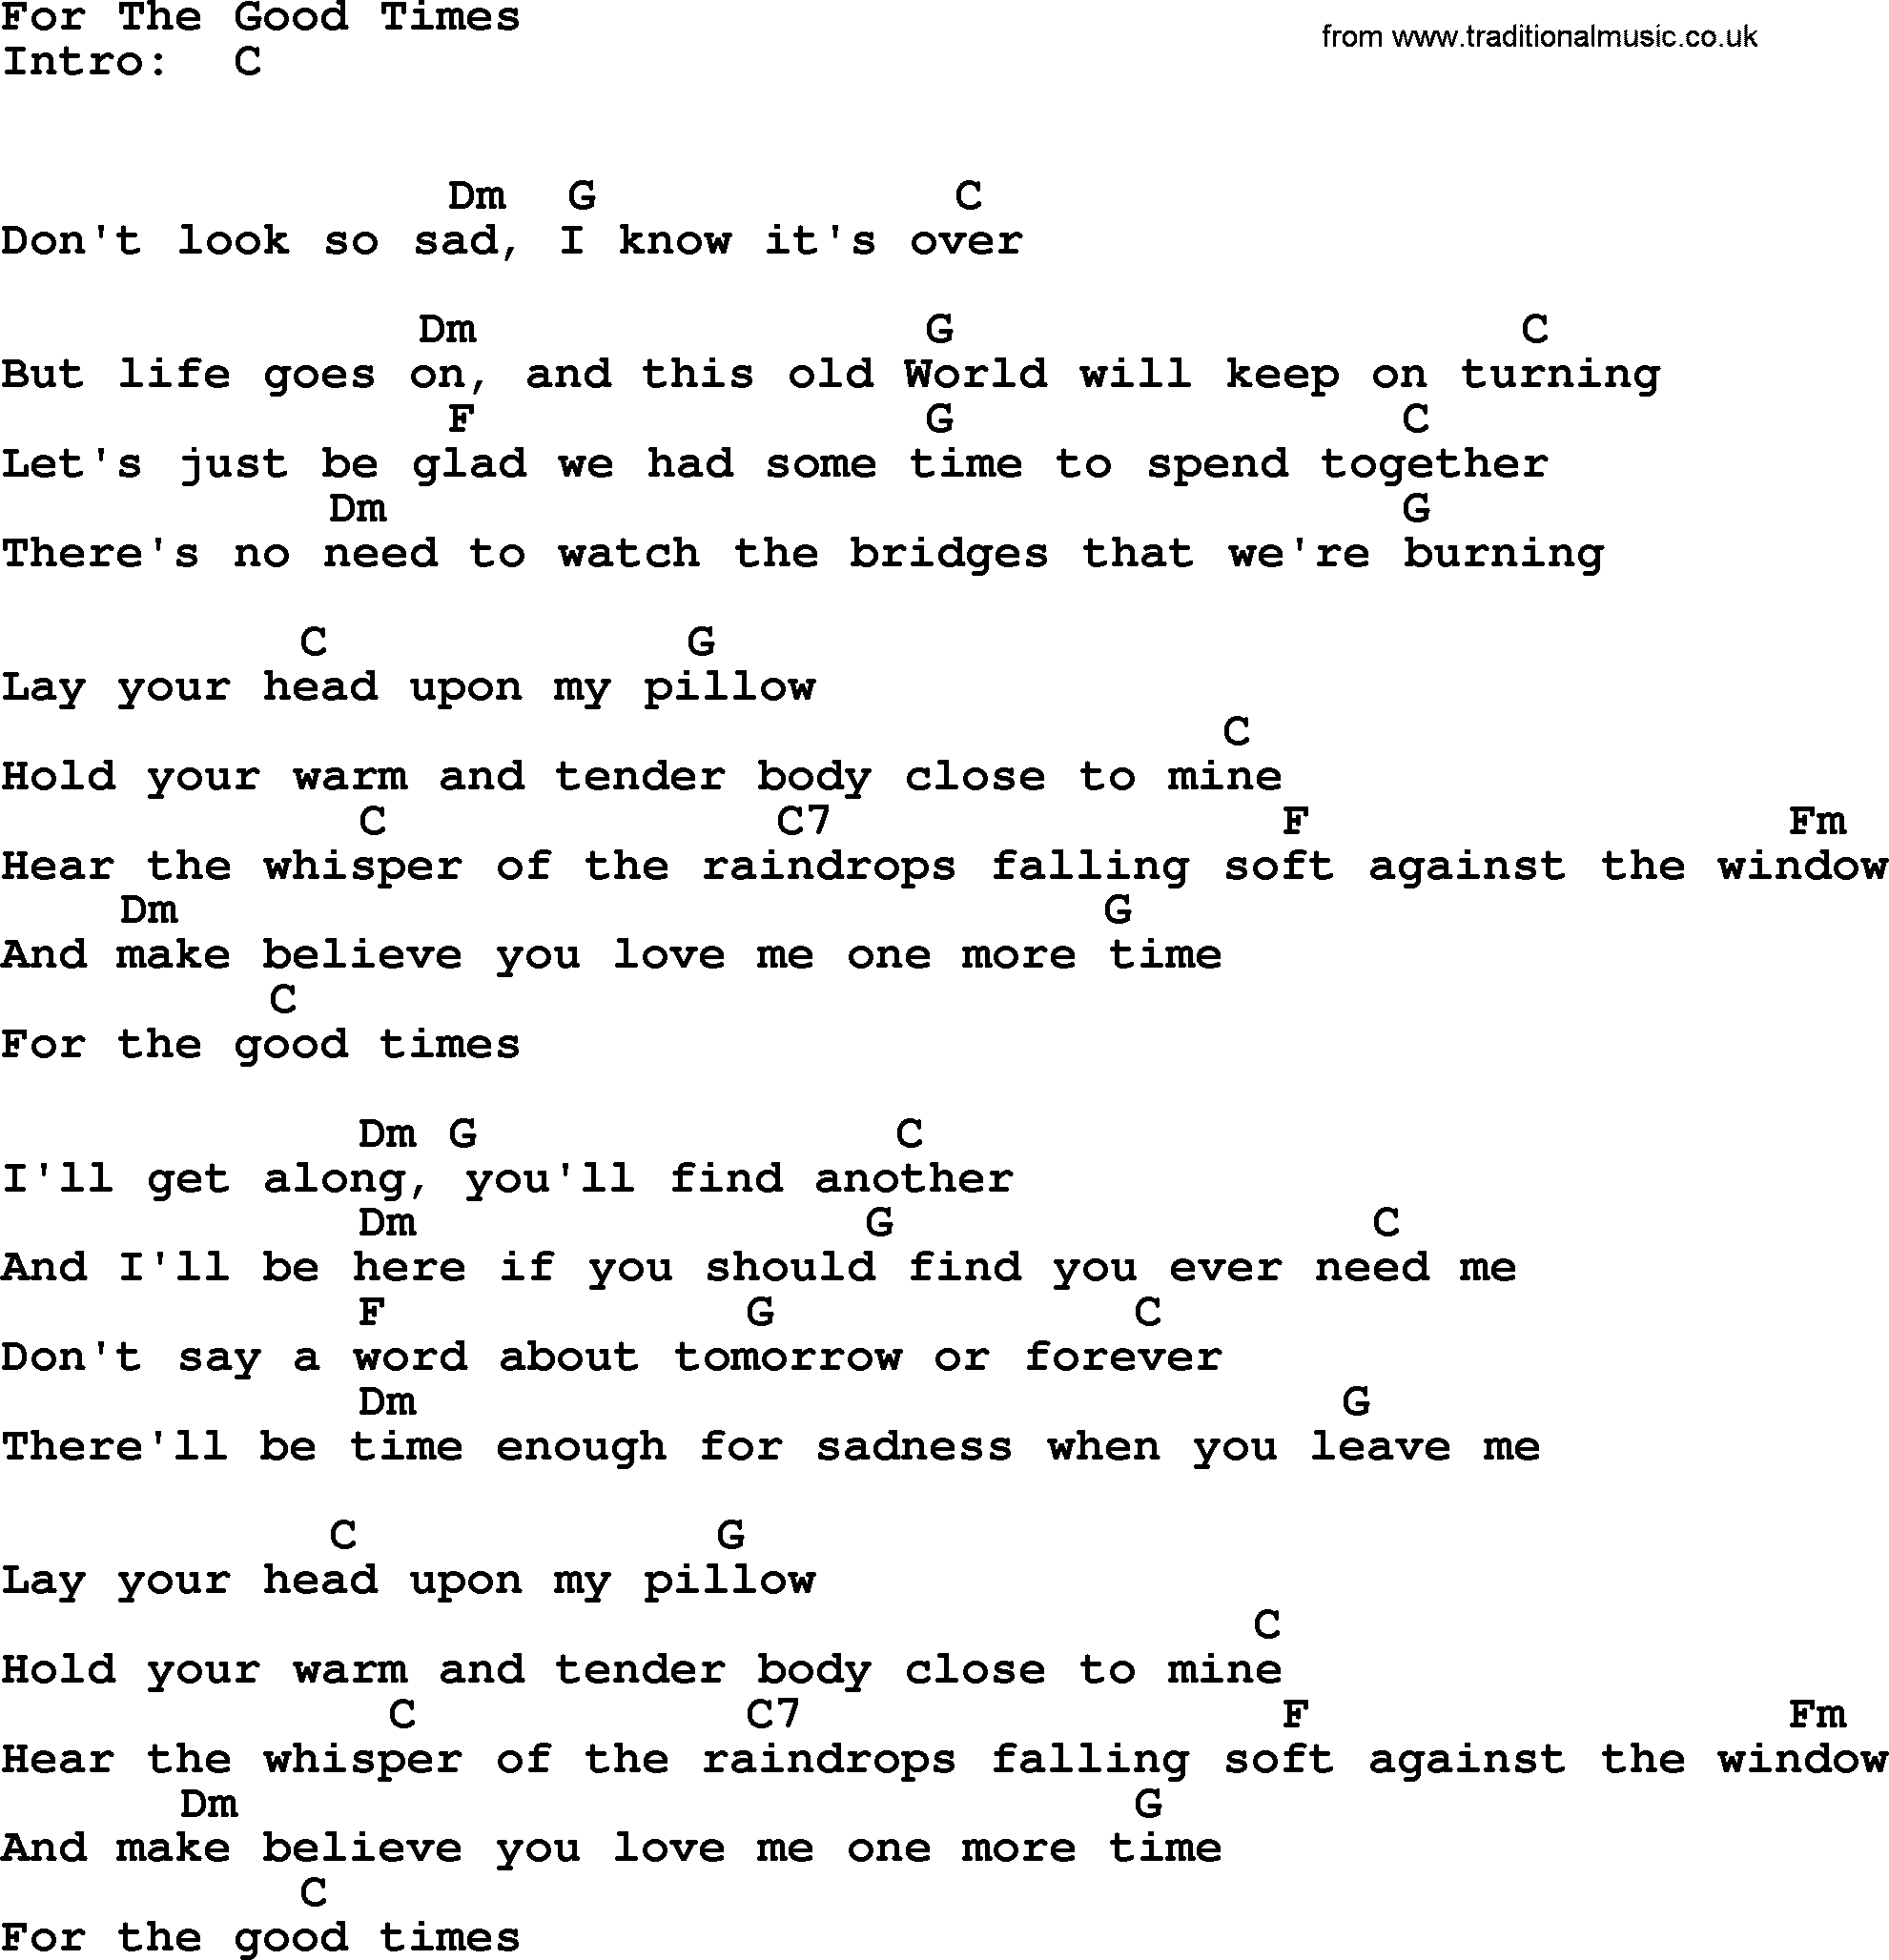 Johnny Cash song For The Good Times, lyrics and chords